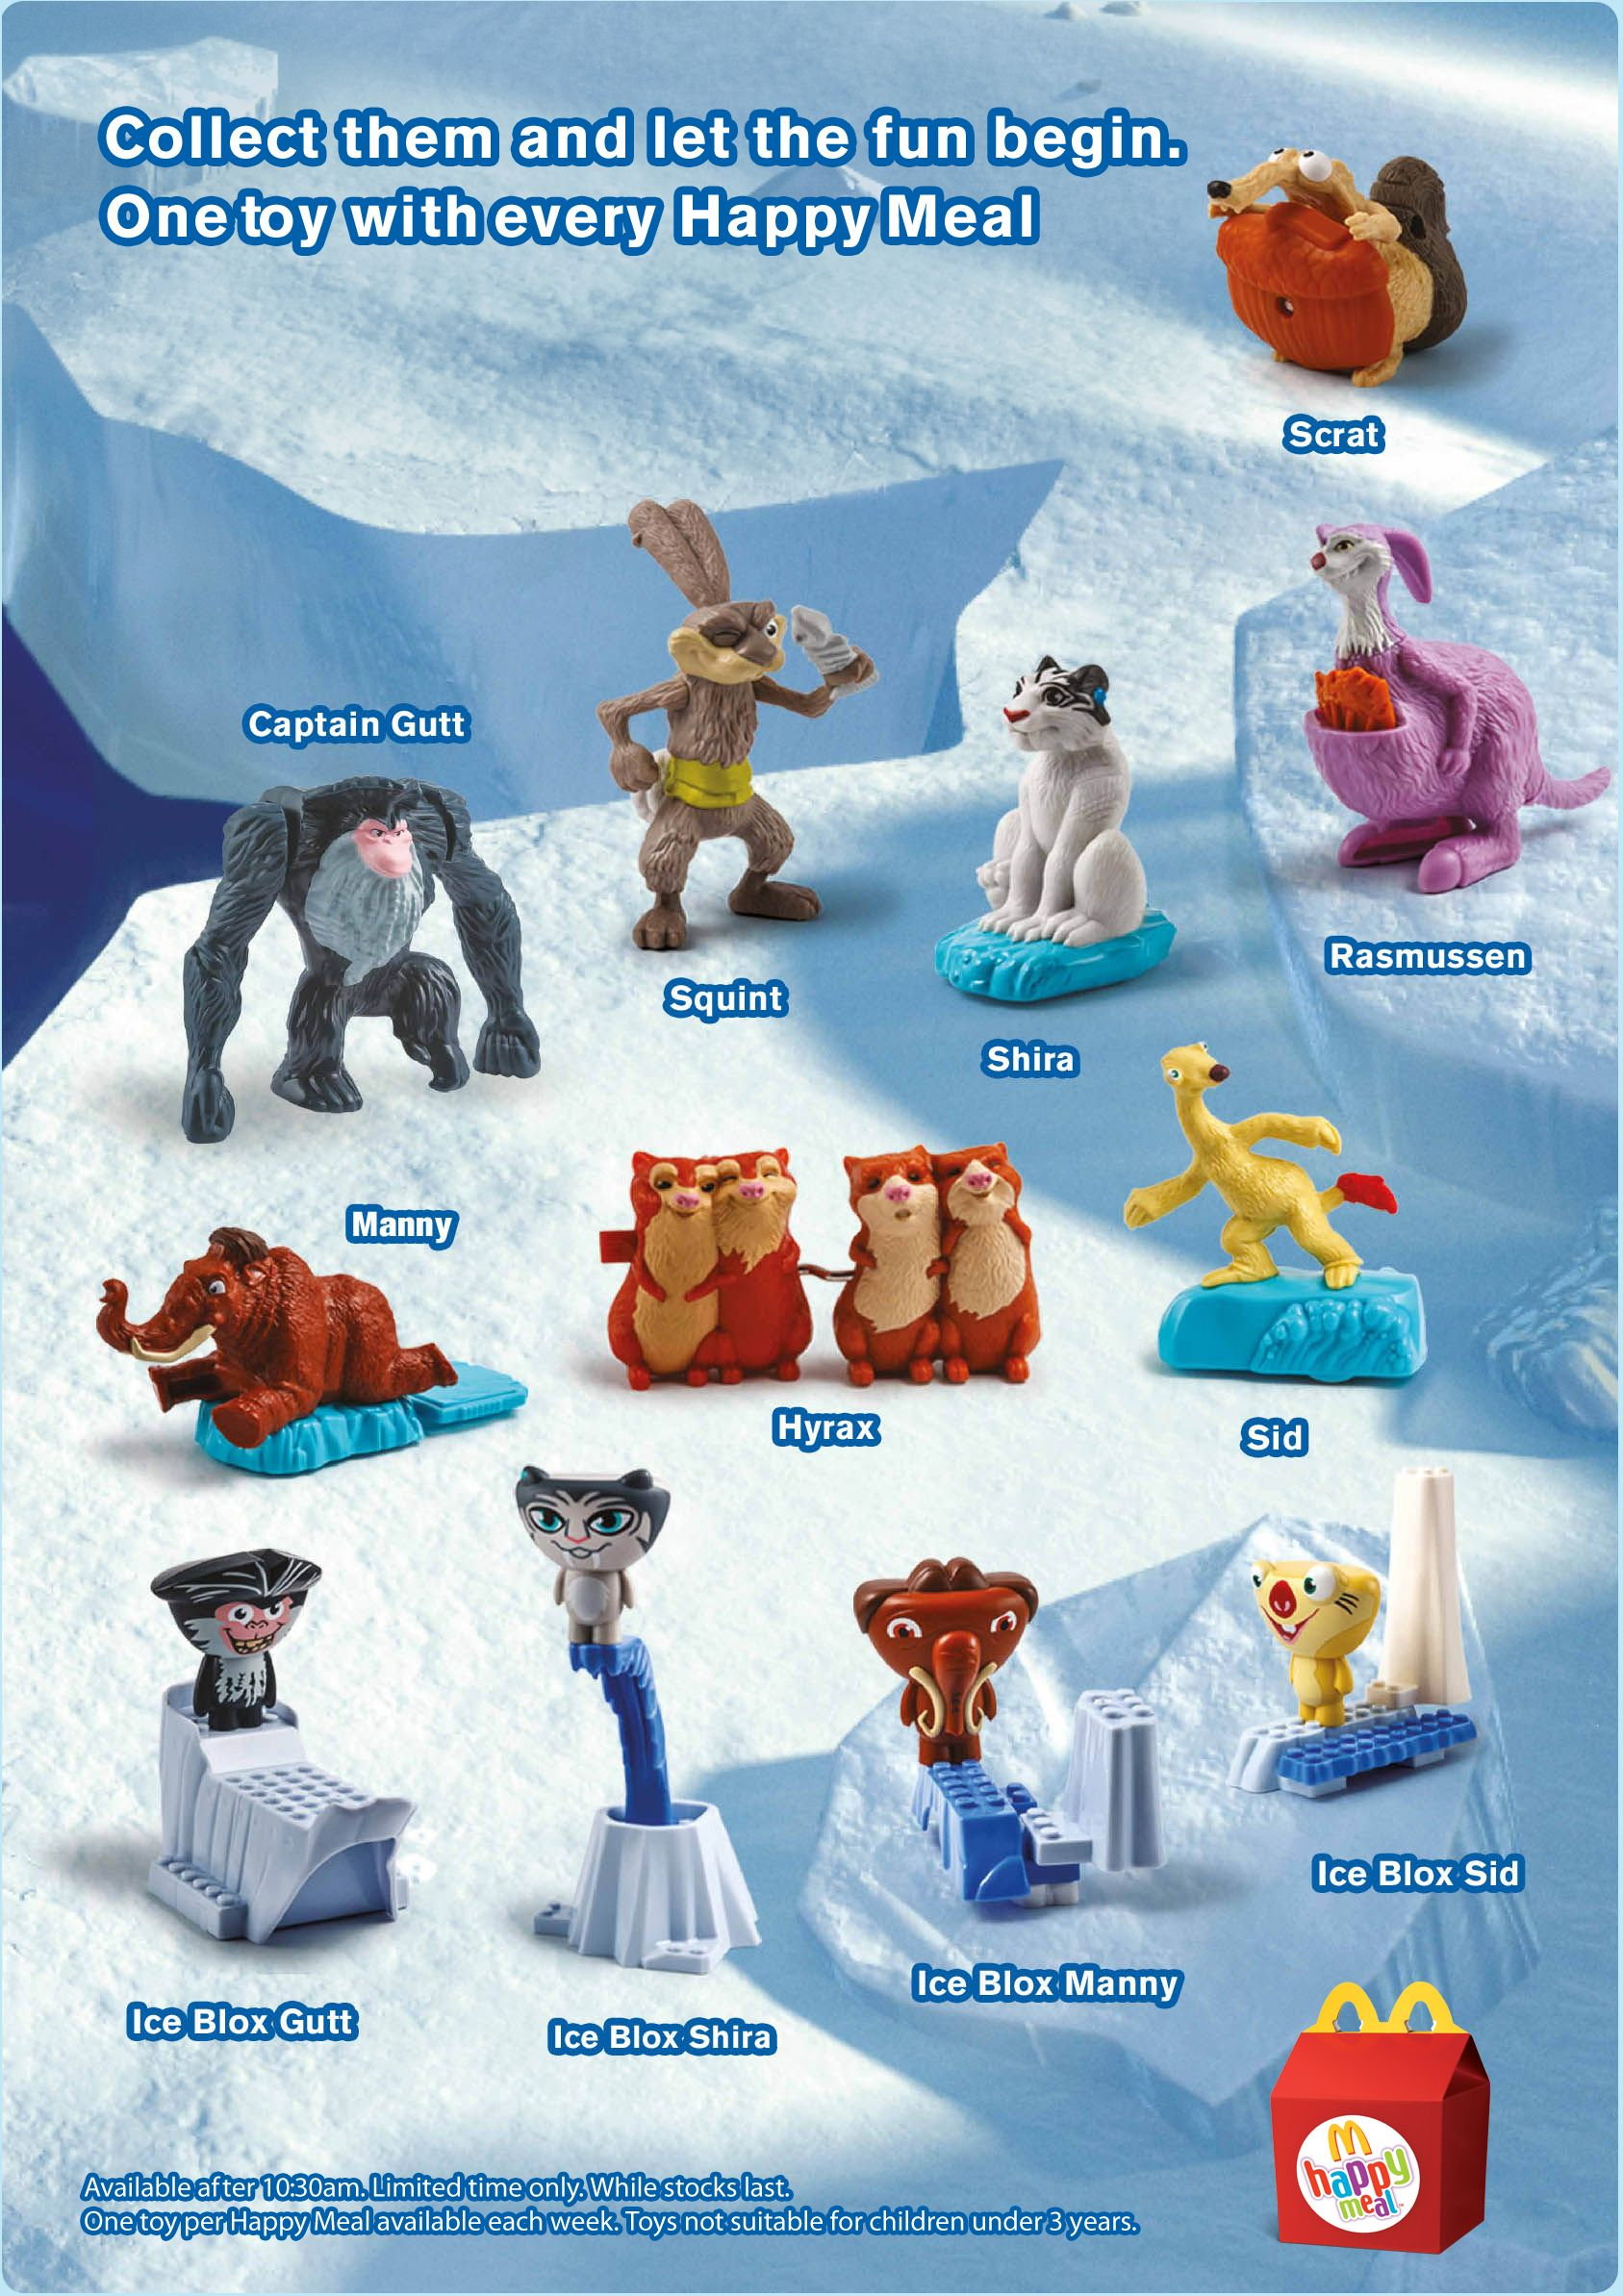 Toys From Mcdonald S Happy Meals : Current mcdonald s happy meal toys south